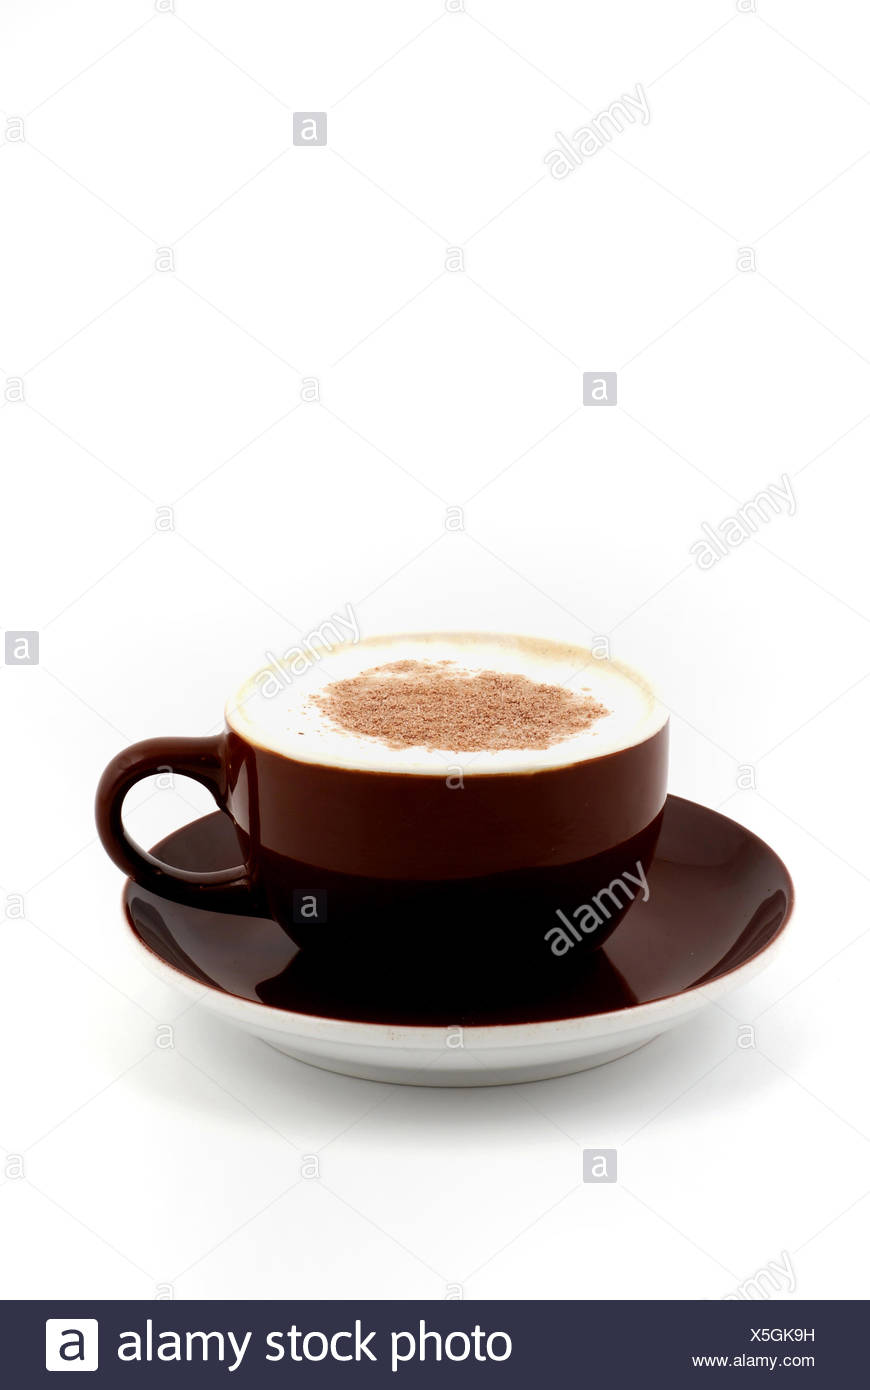 Tasse Kaffee Milch Stock Photos & Tasse Kaffee Milch Stock Images ...